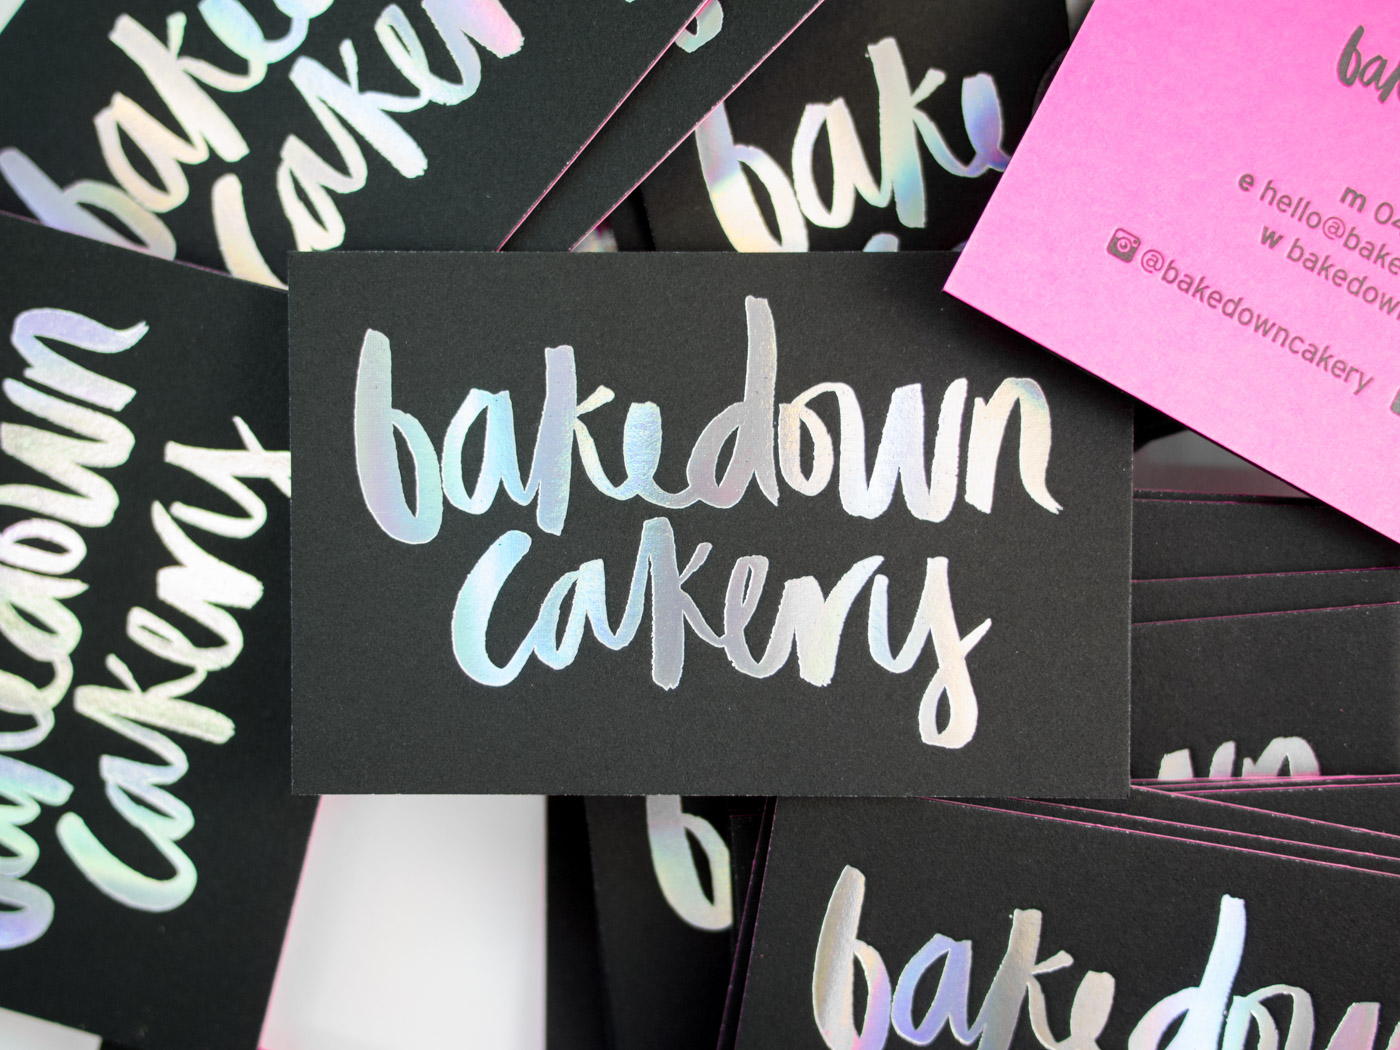 Bakedown Cakery | Printed by Parklife Press